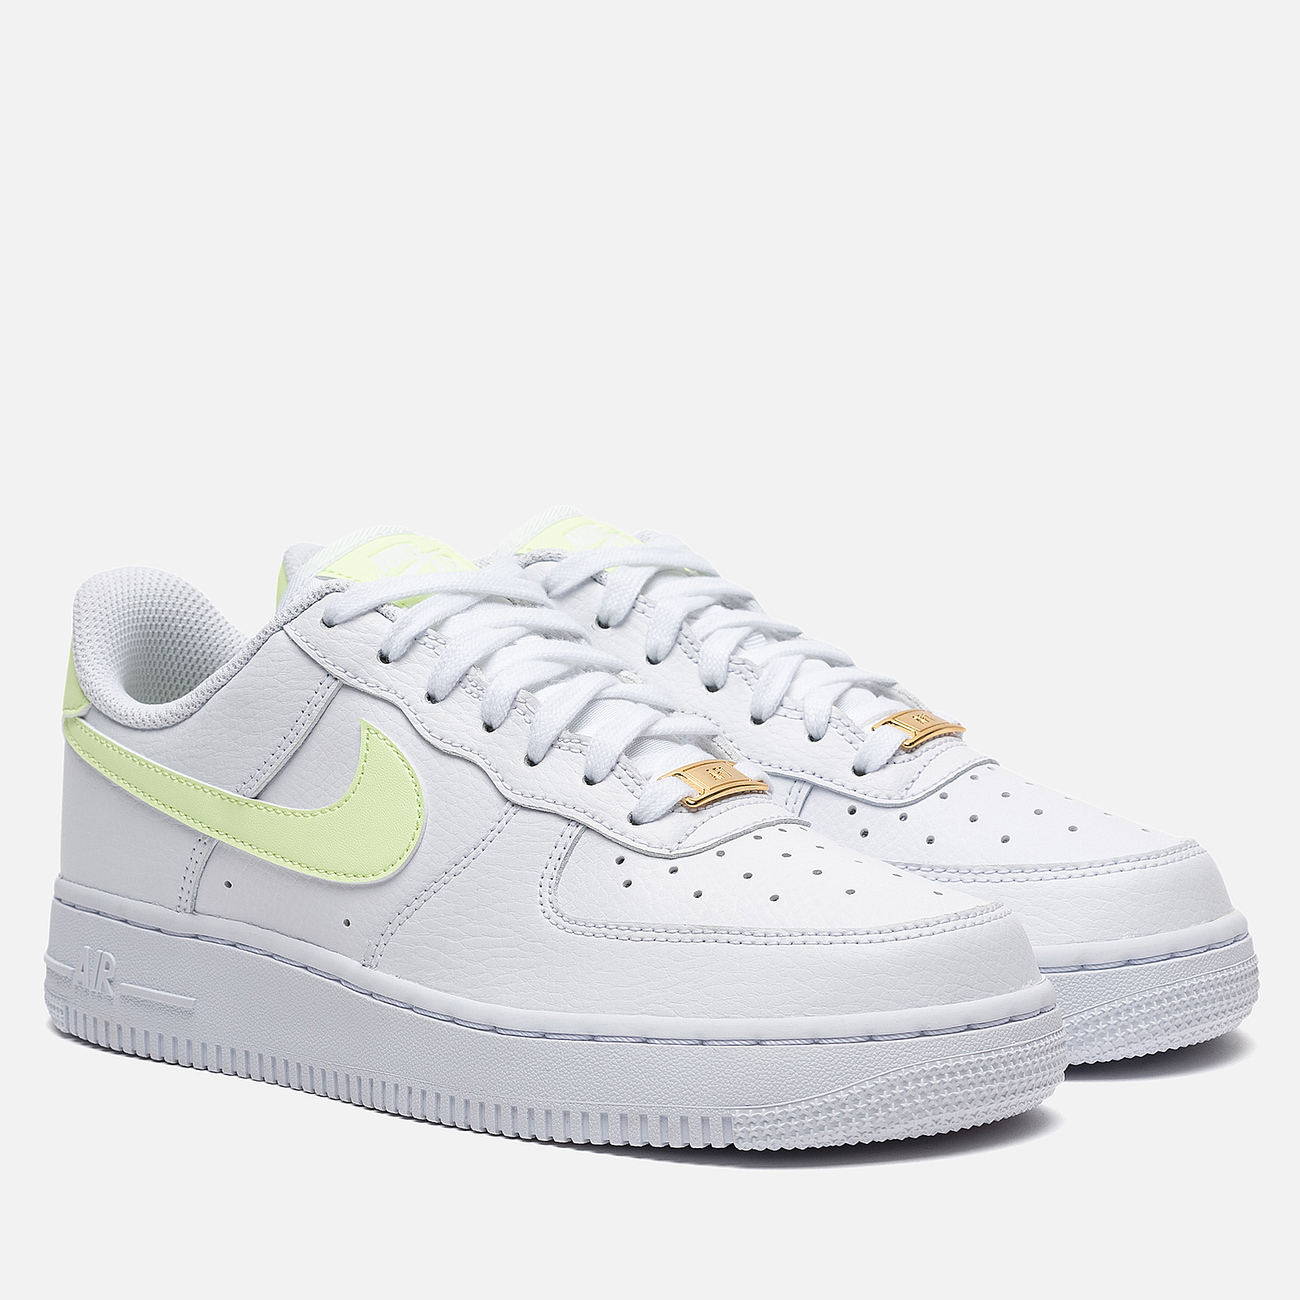 Женские кроссовки Nike Air Force 1 '07 White/Barely Volt/White/White